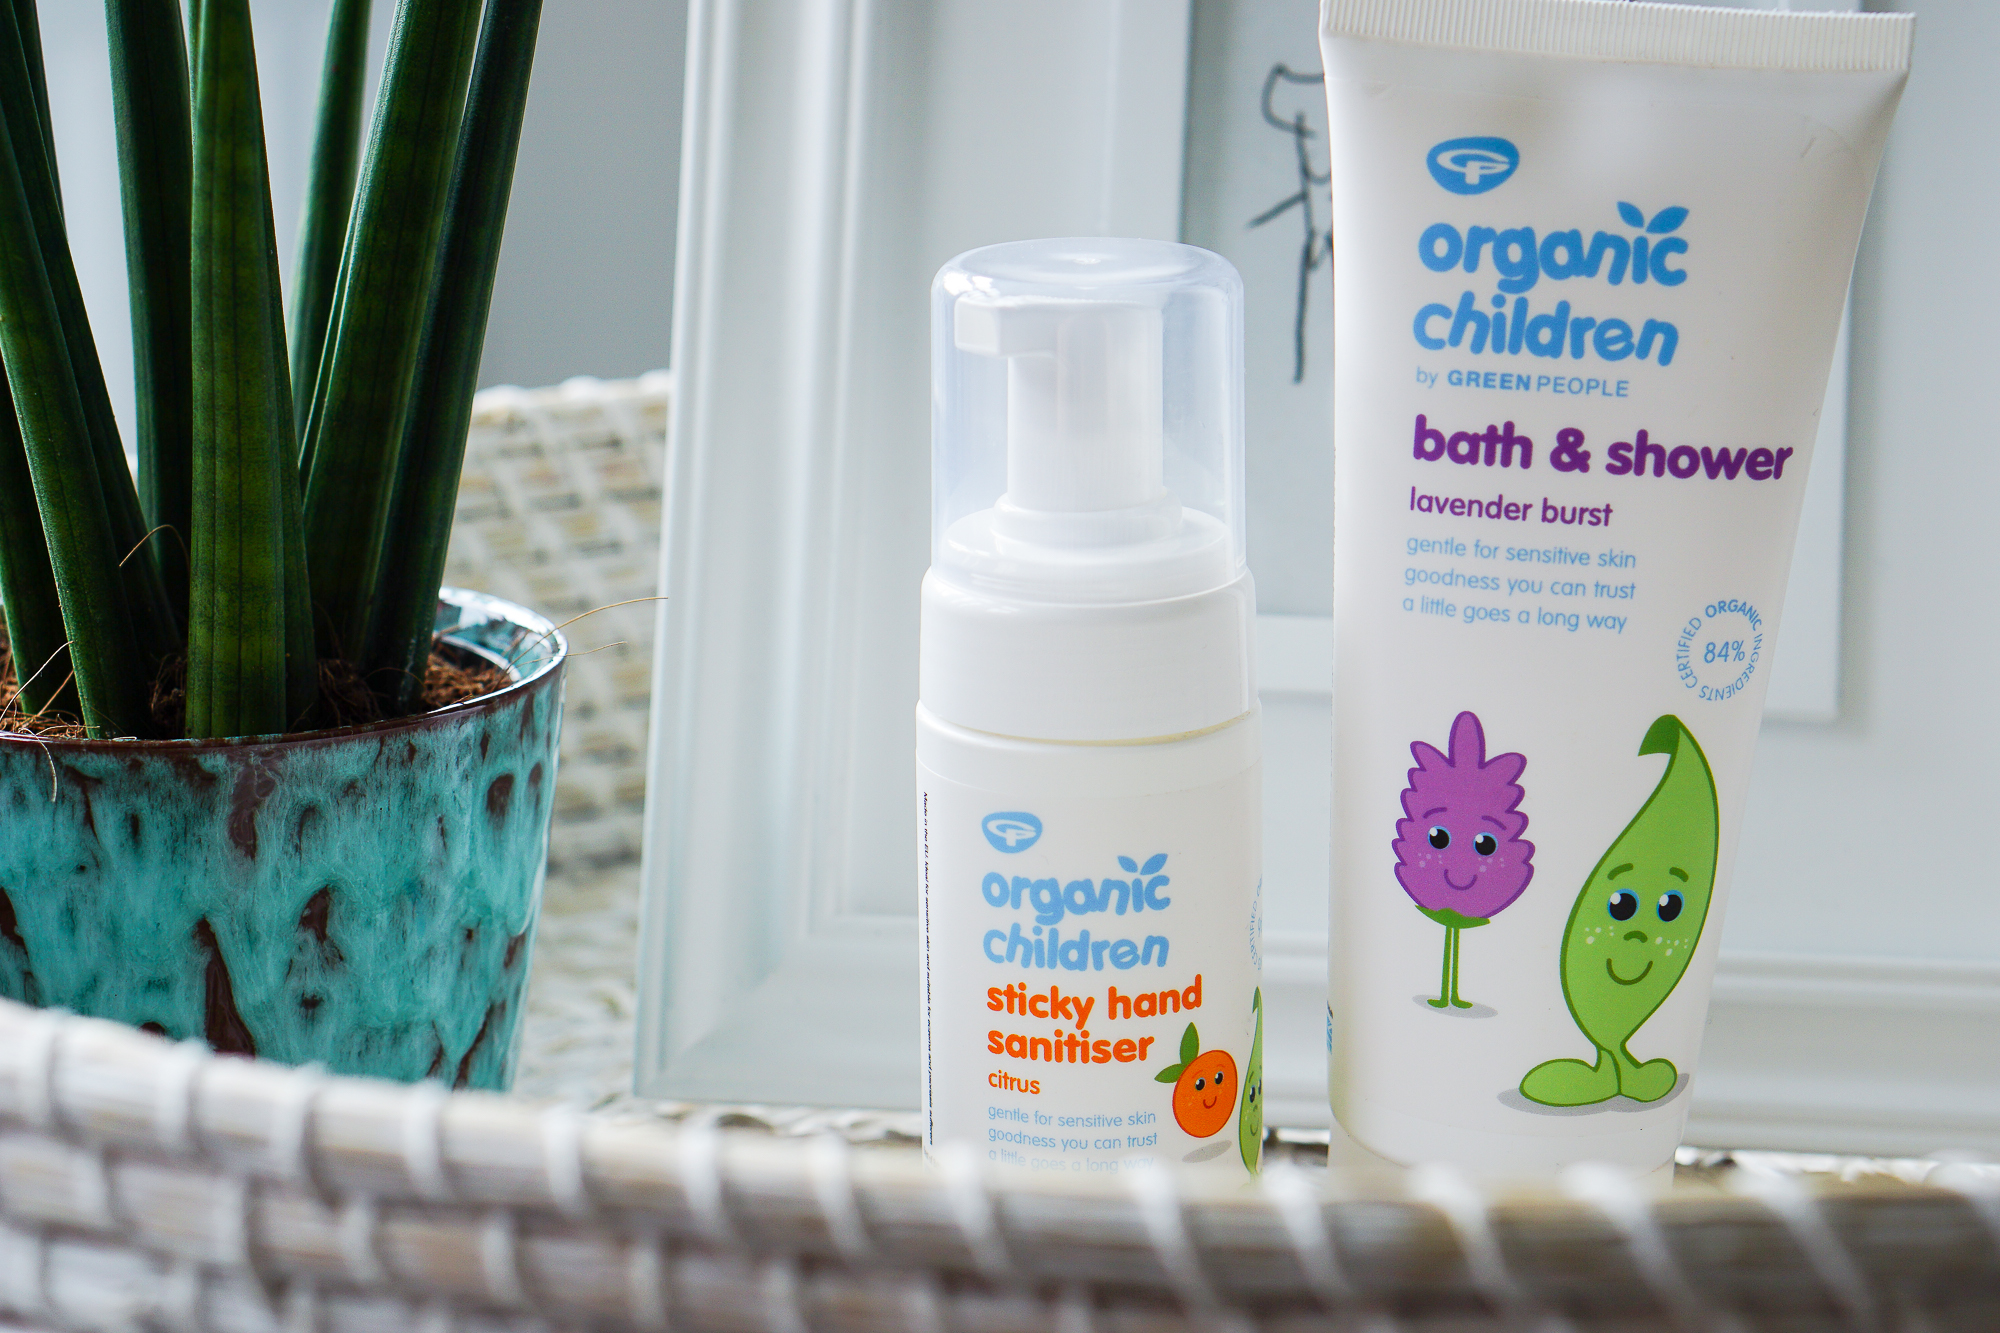 Our family favourites: Green People Organic Lifestyle Beauty & Skincare Products